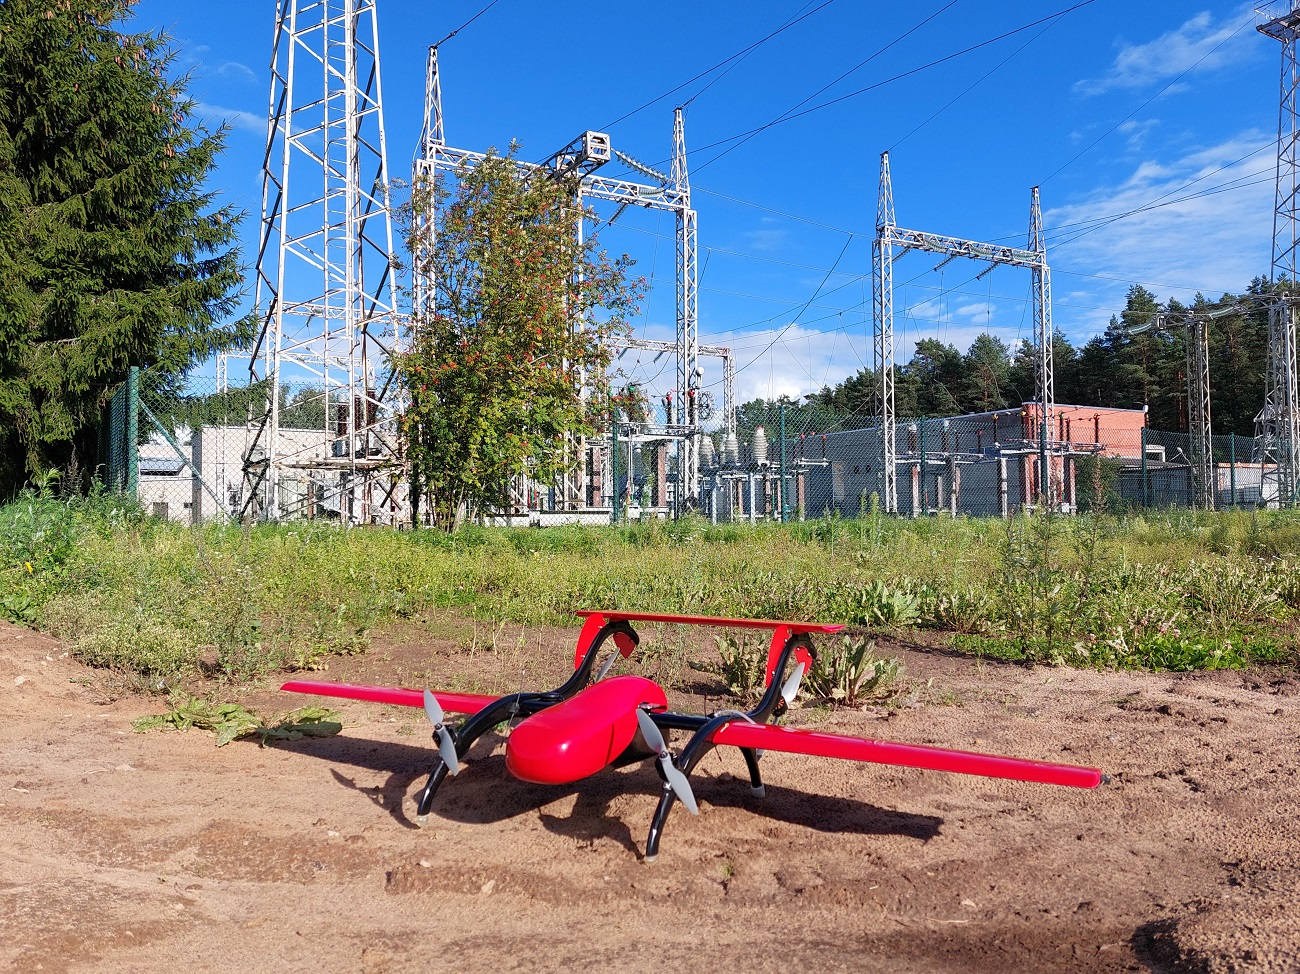 FIXAR equips outdoor UAVs with the BlackBox for safer sky